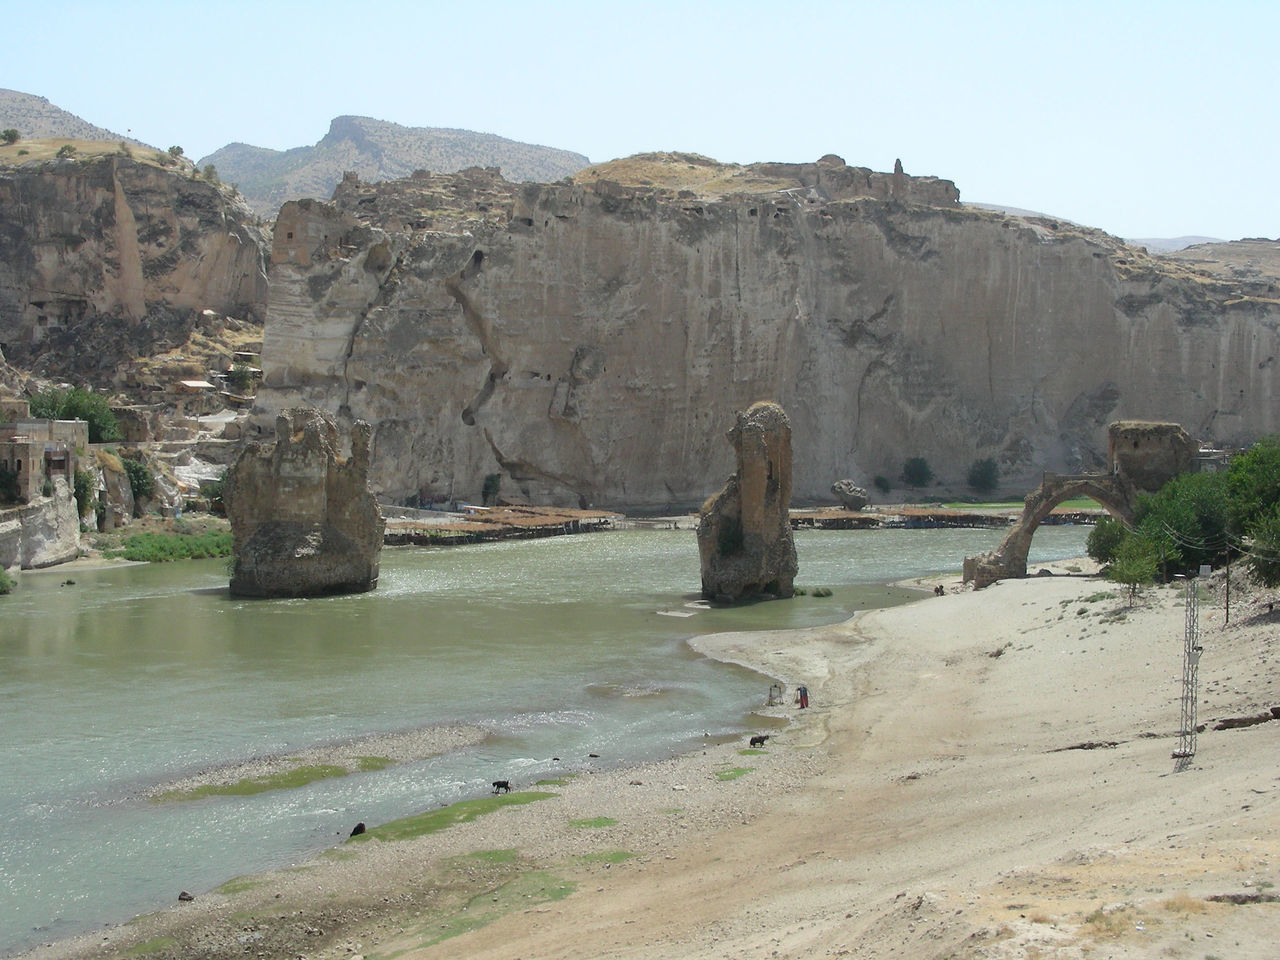 A last look at Hasankeyf before its flooded by the reservuar waters :( Beach Beauty In Nature Bridge Day Geology Hasankeyf Hasankeyfkoprusu Landscape Lost Heritage Mountain Nature No People Outdoors Rock - Object Sand Sand Dune Save Hasankeyf Scenics Sea Water